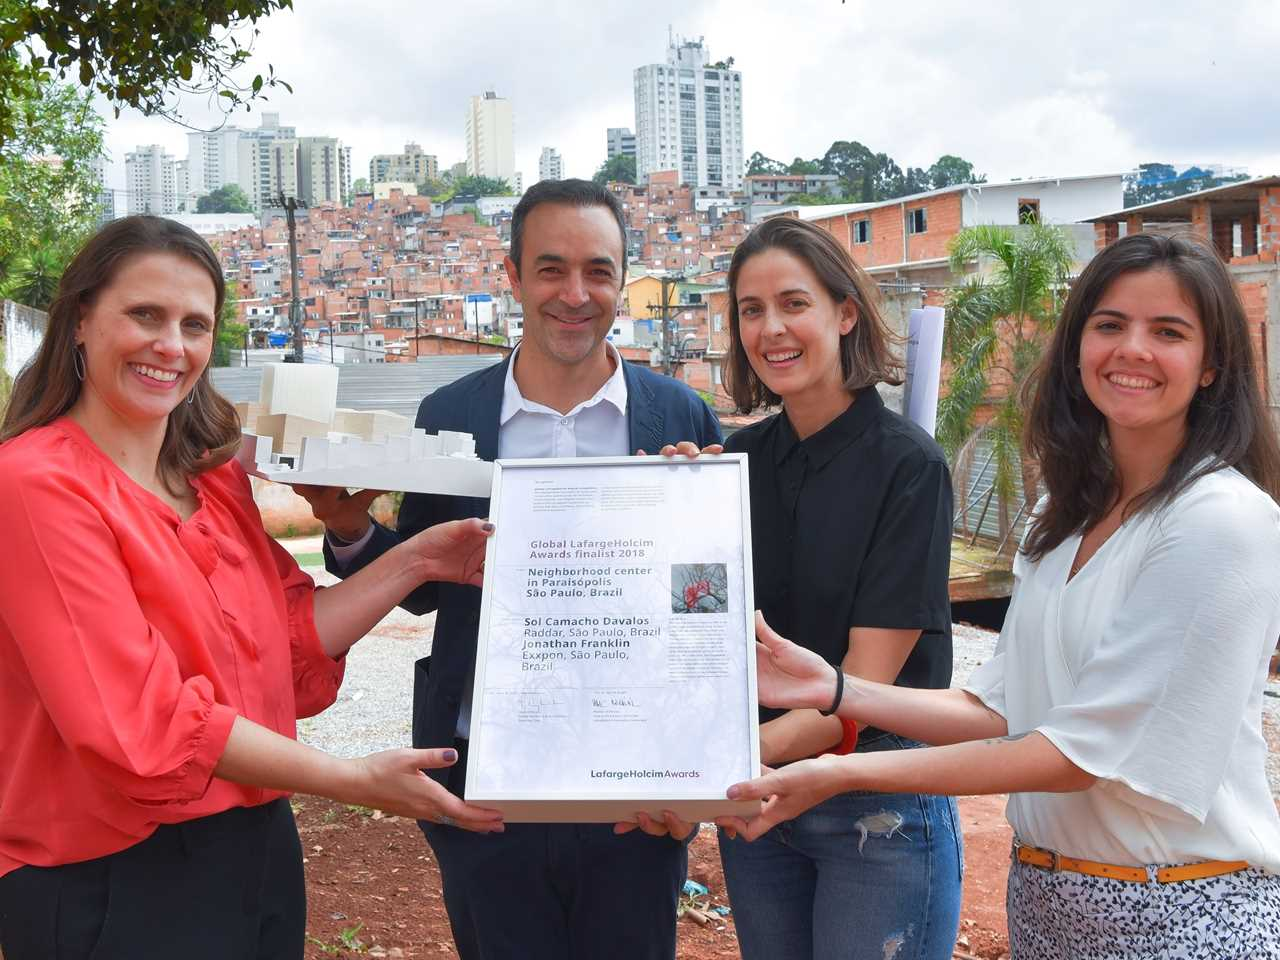 Global Finalist Certificate Handover – Community Capital in Brazil